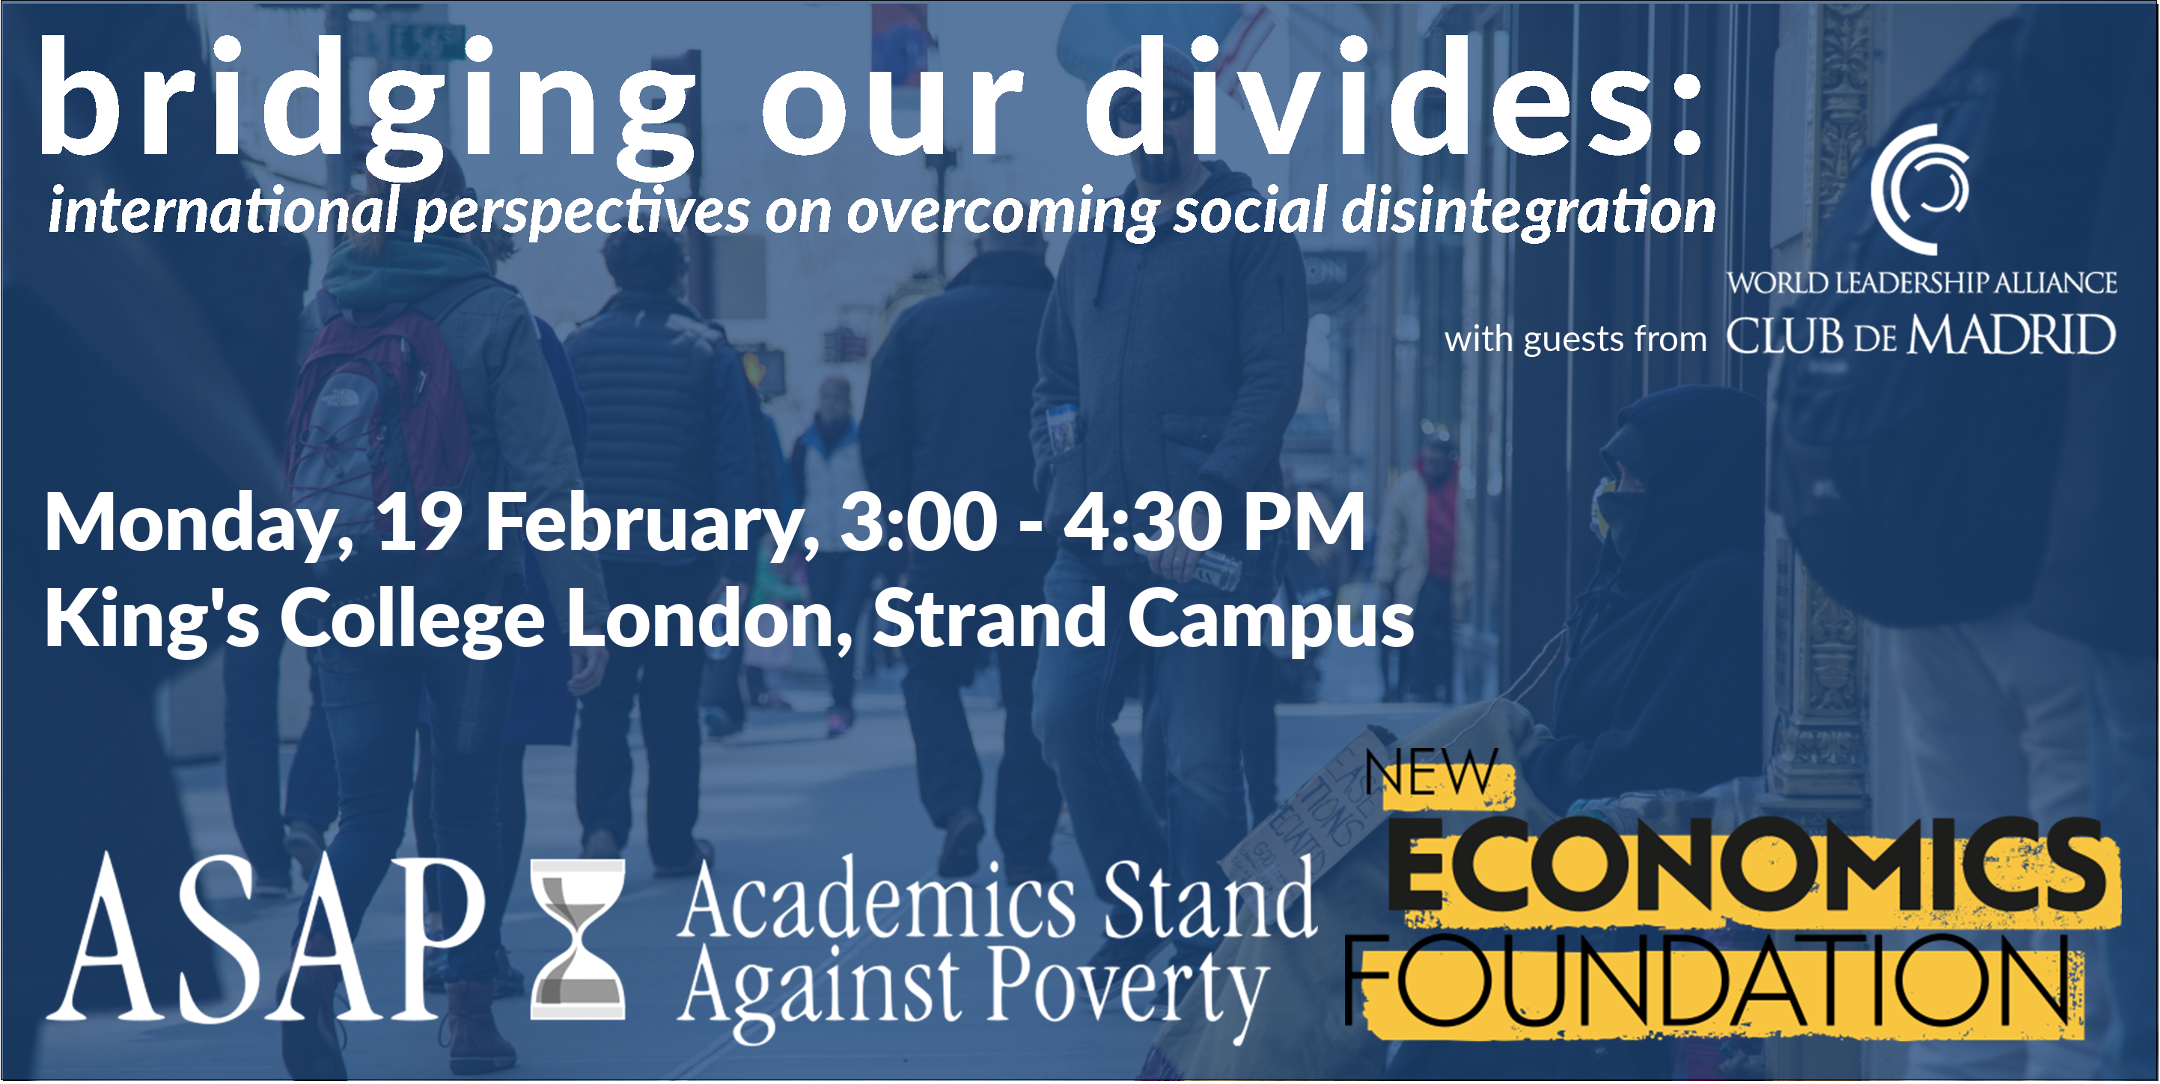 Bridging Our Divides: International Perspectives on Overcoming Social Disintegration - 19 Feb @ King's College London